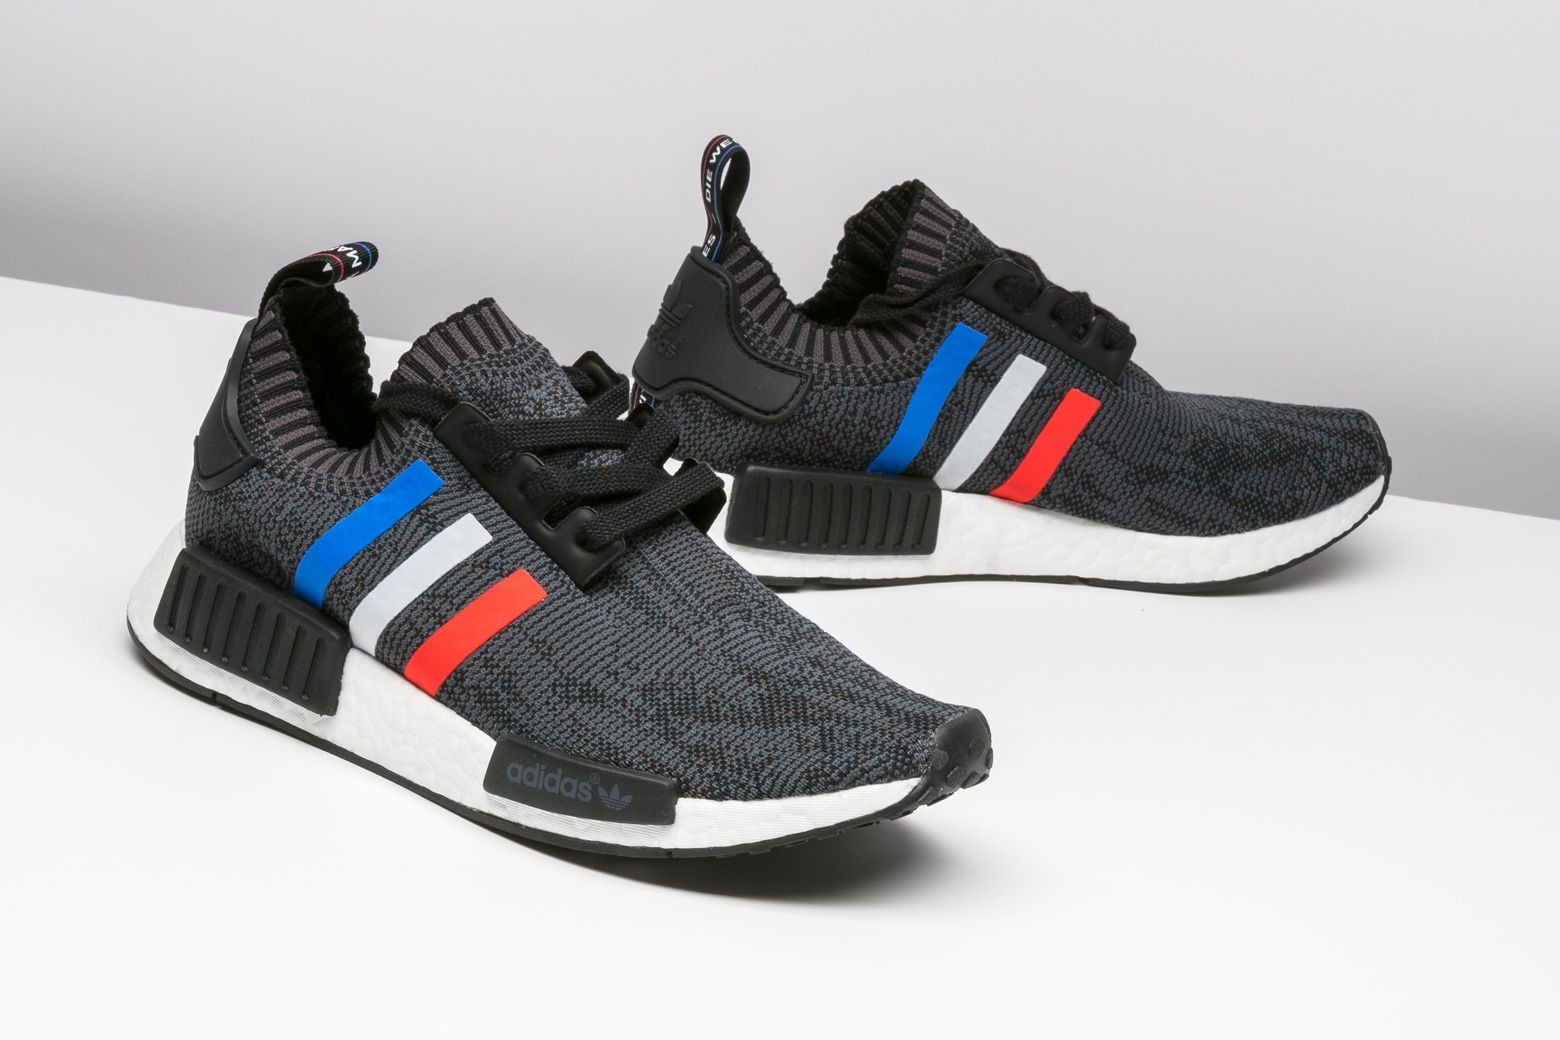 brand new 7a132 5efb0 One-half of the adidas NMD R1 Primeknit